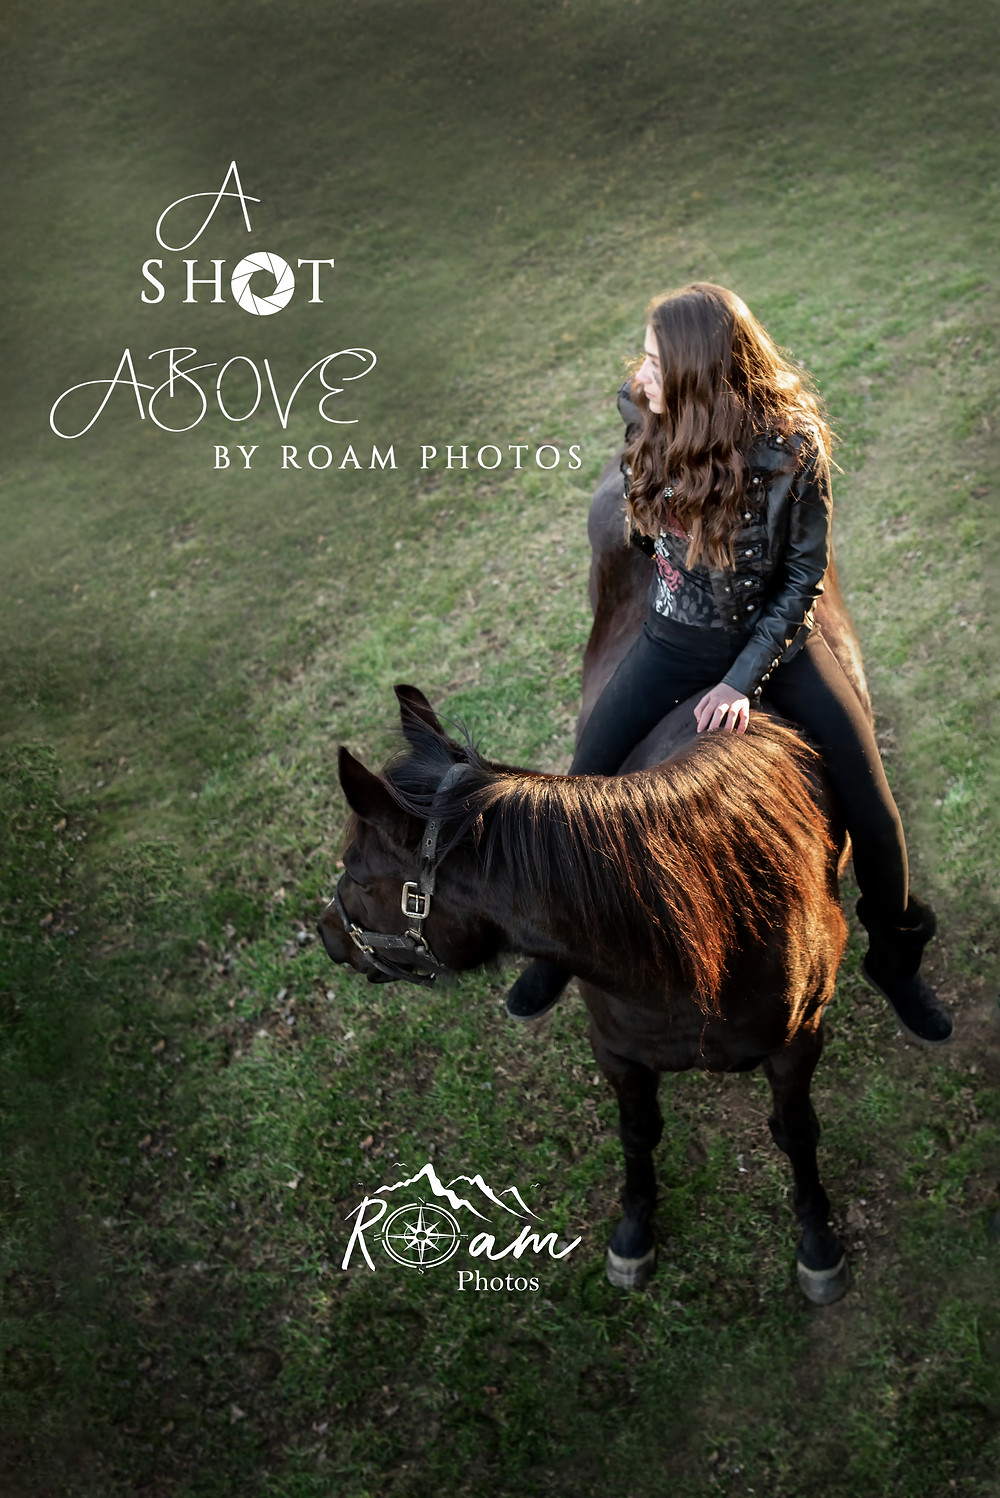 A Shot Above of girl on horse